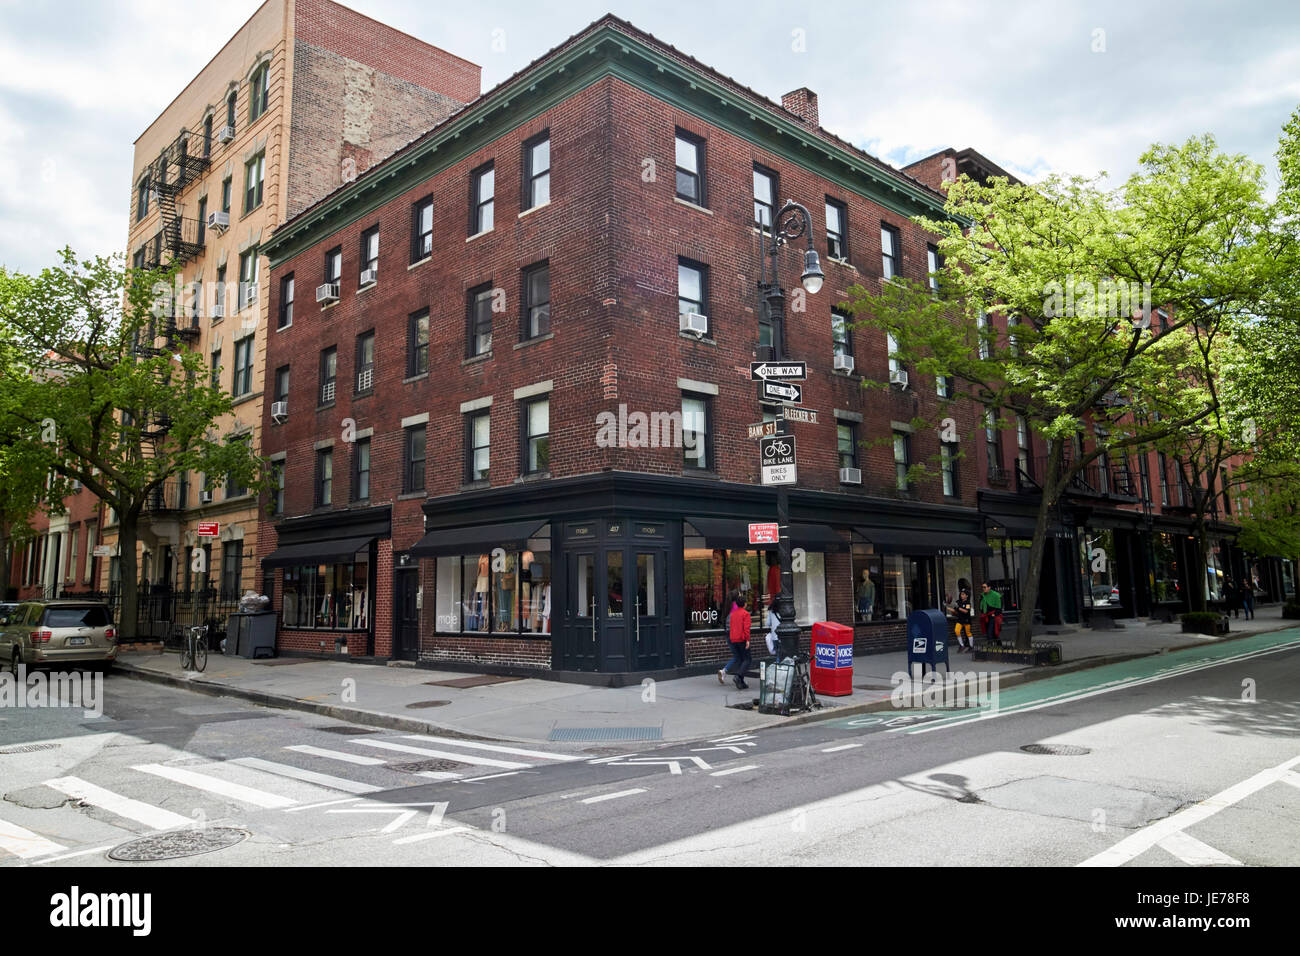 4-story red brick residential building on the corner of bleeker street and bank st greenwich village New York City - Stock Image